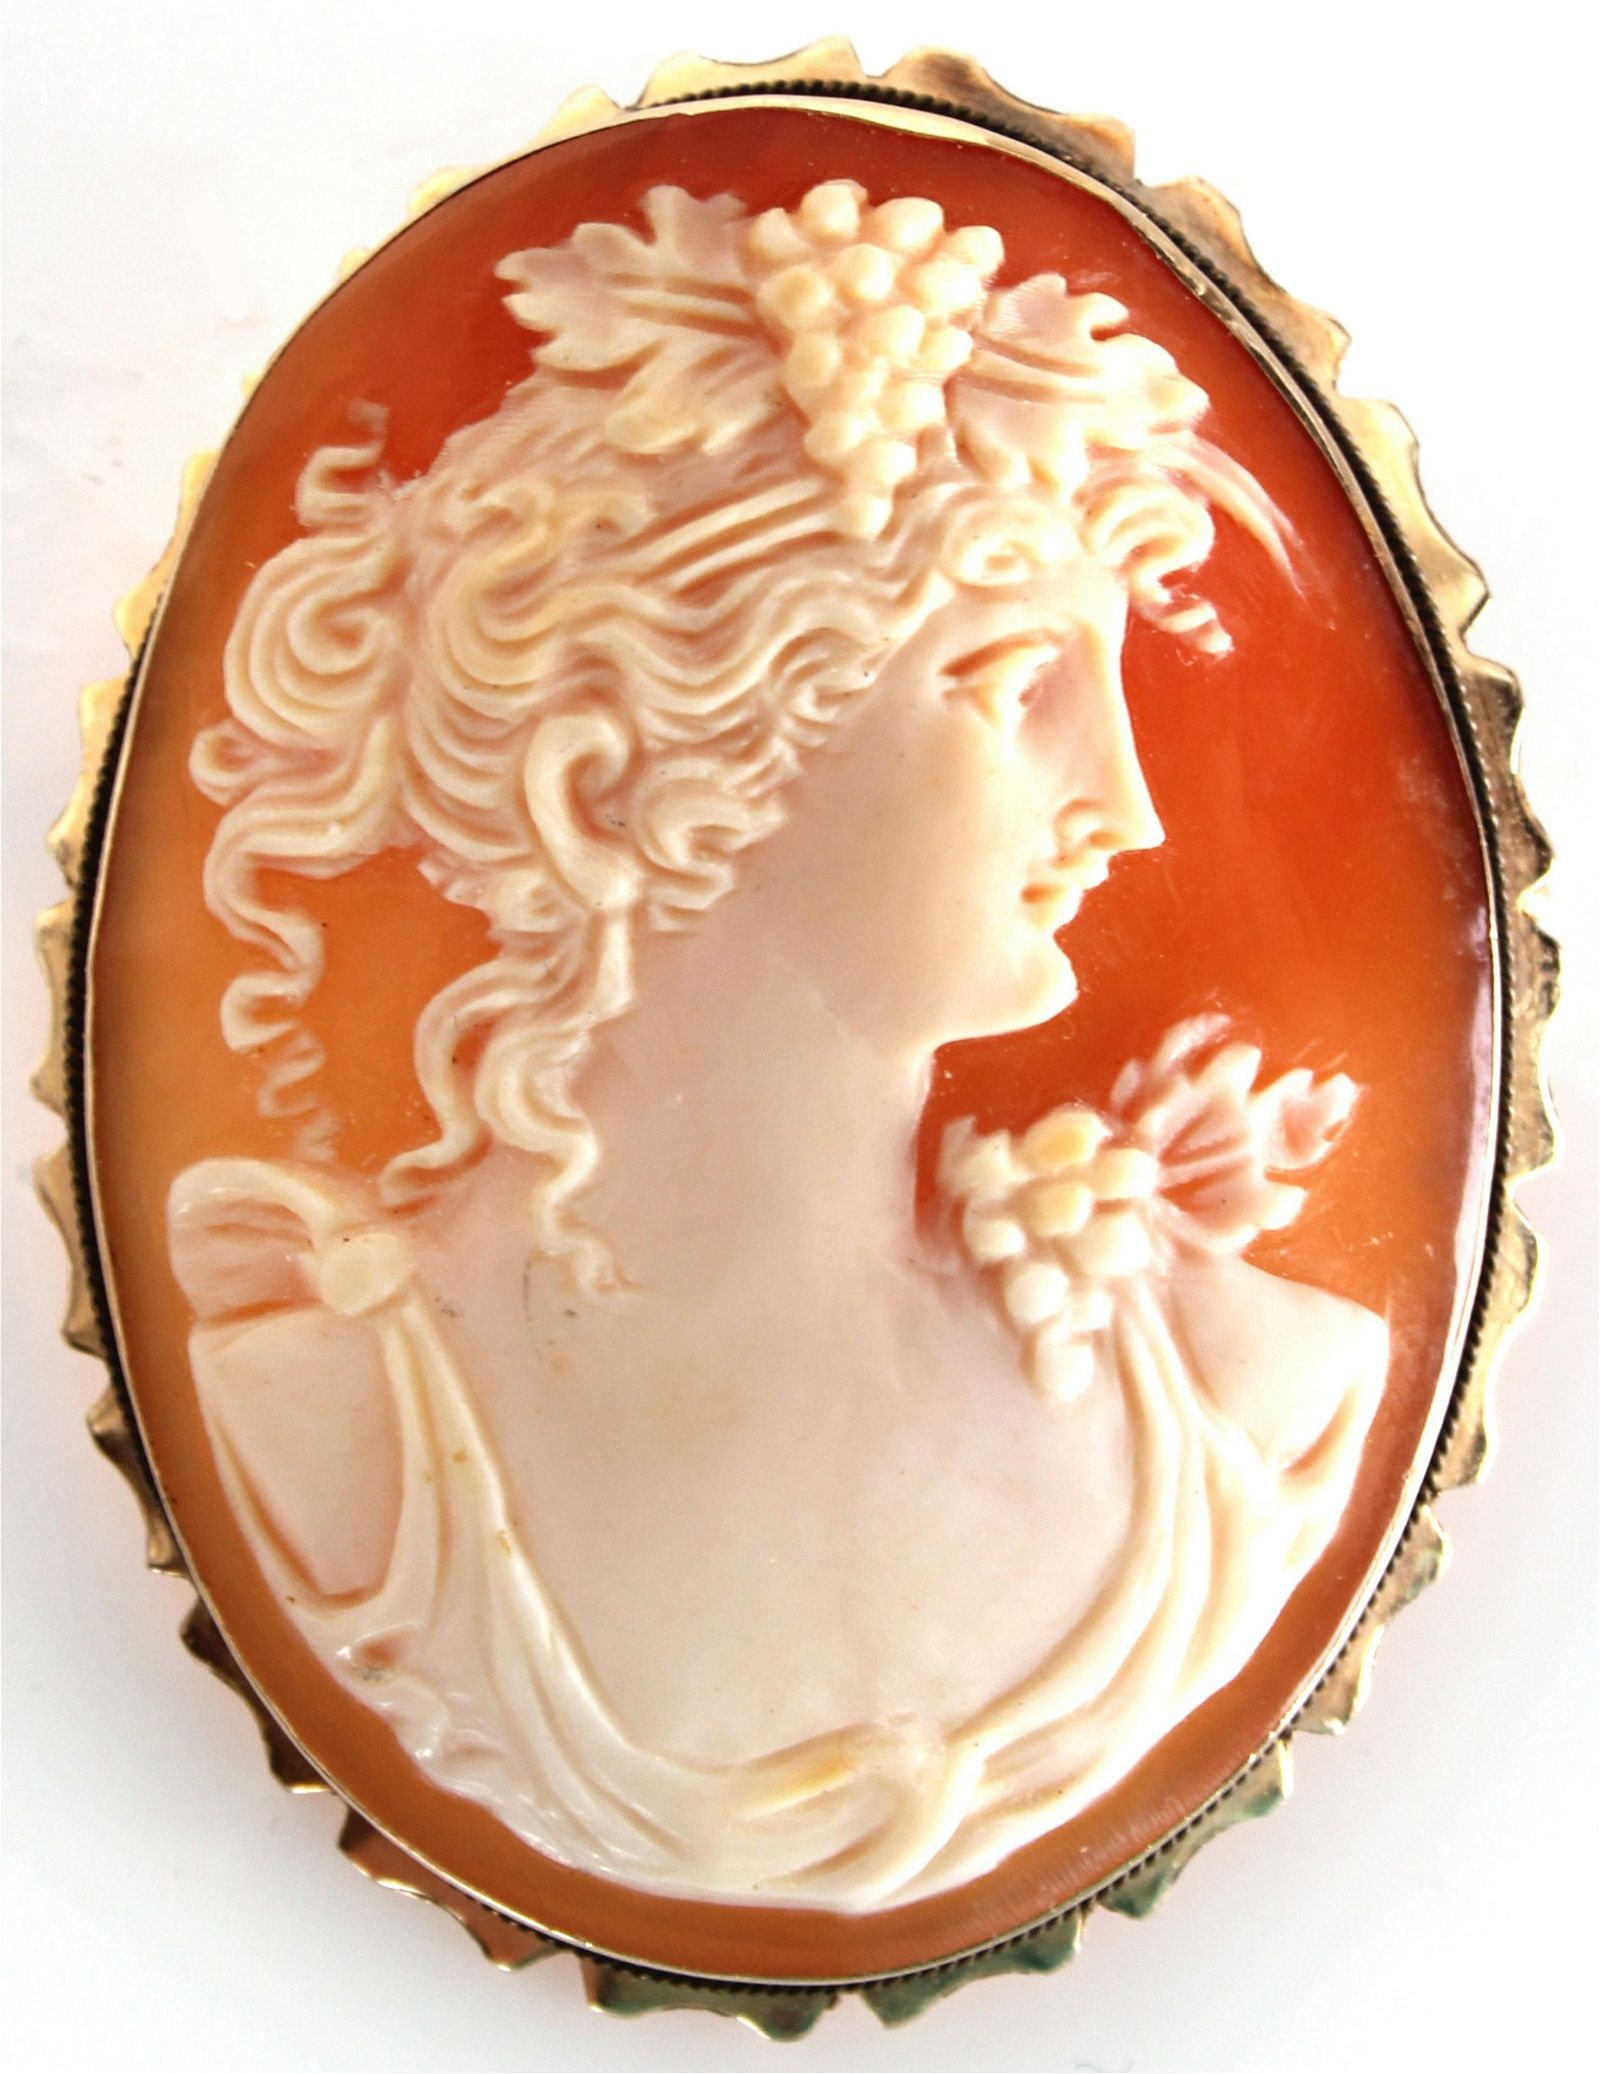 14K YELLOW GOLD VINTAGE CAMEO BROOCH/ PENDANT